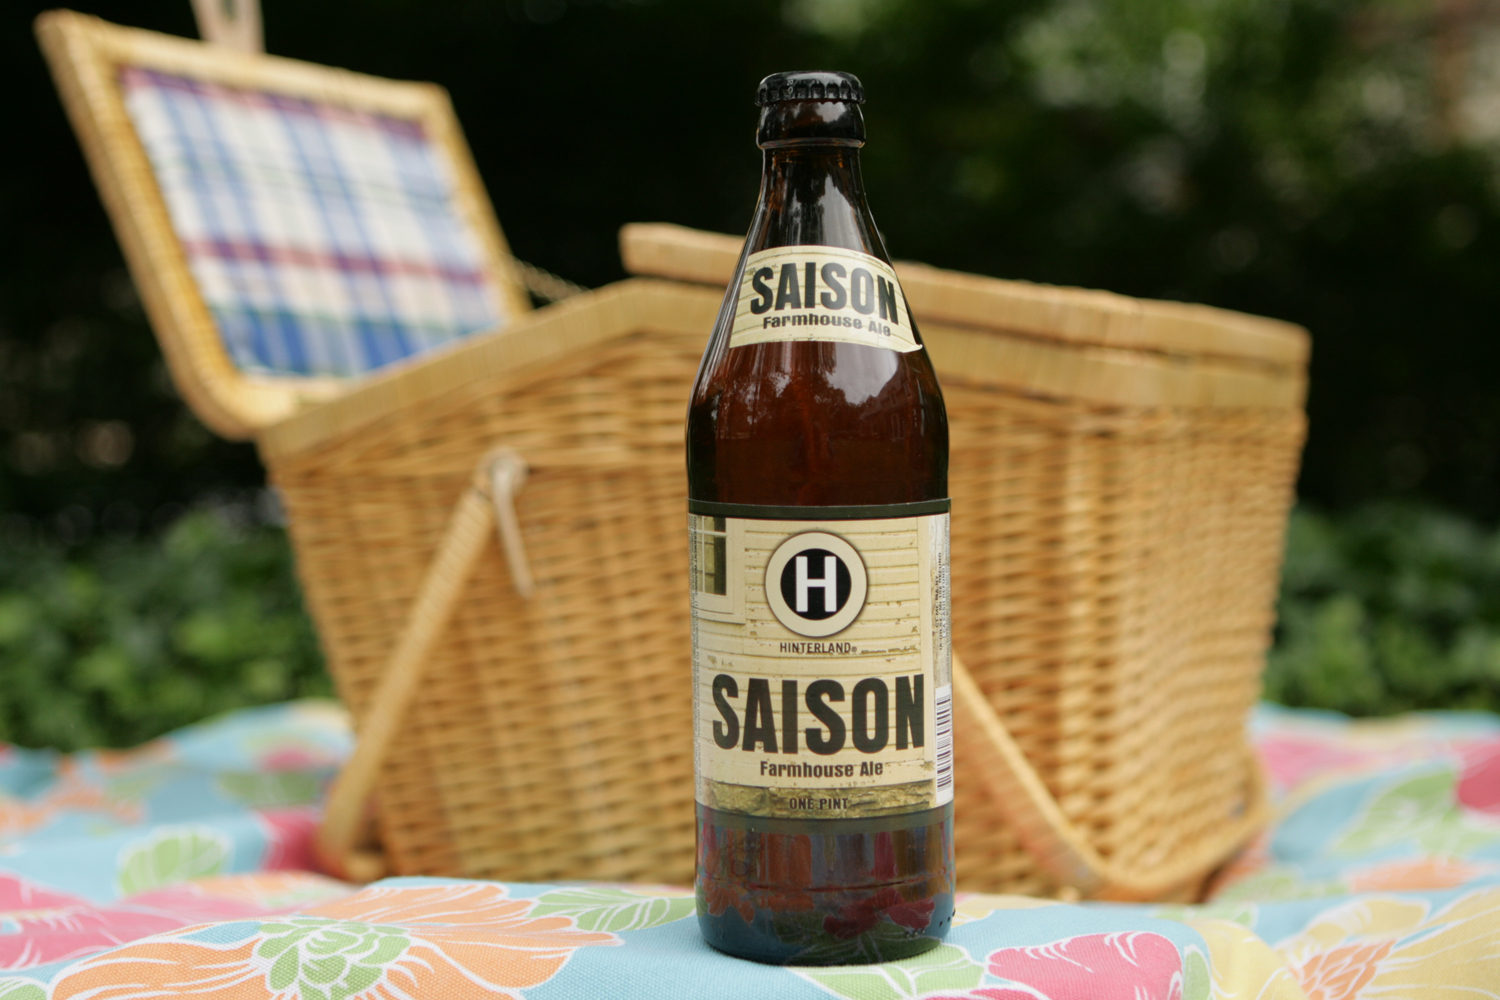 Hinterland Saison is the perfect picnic summer Wisconsin beer.